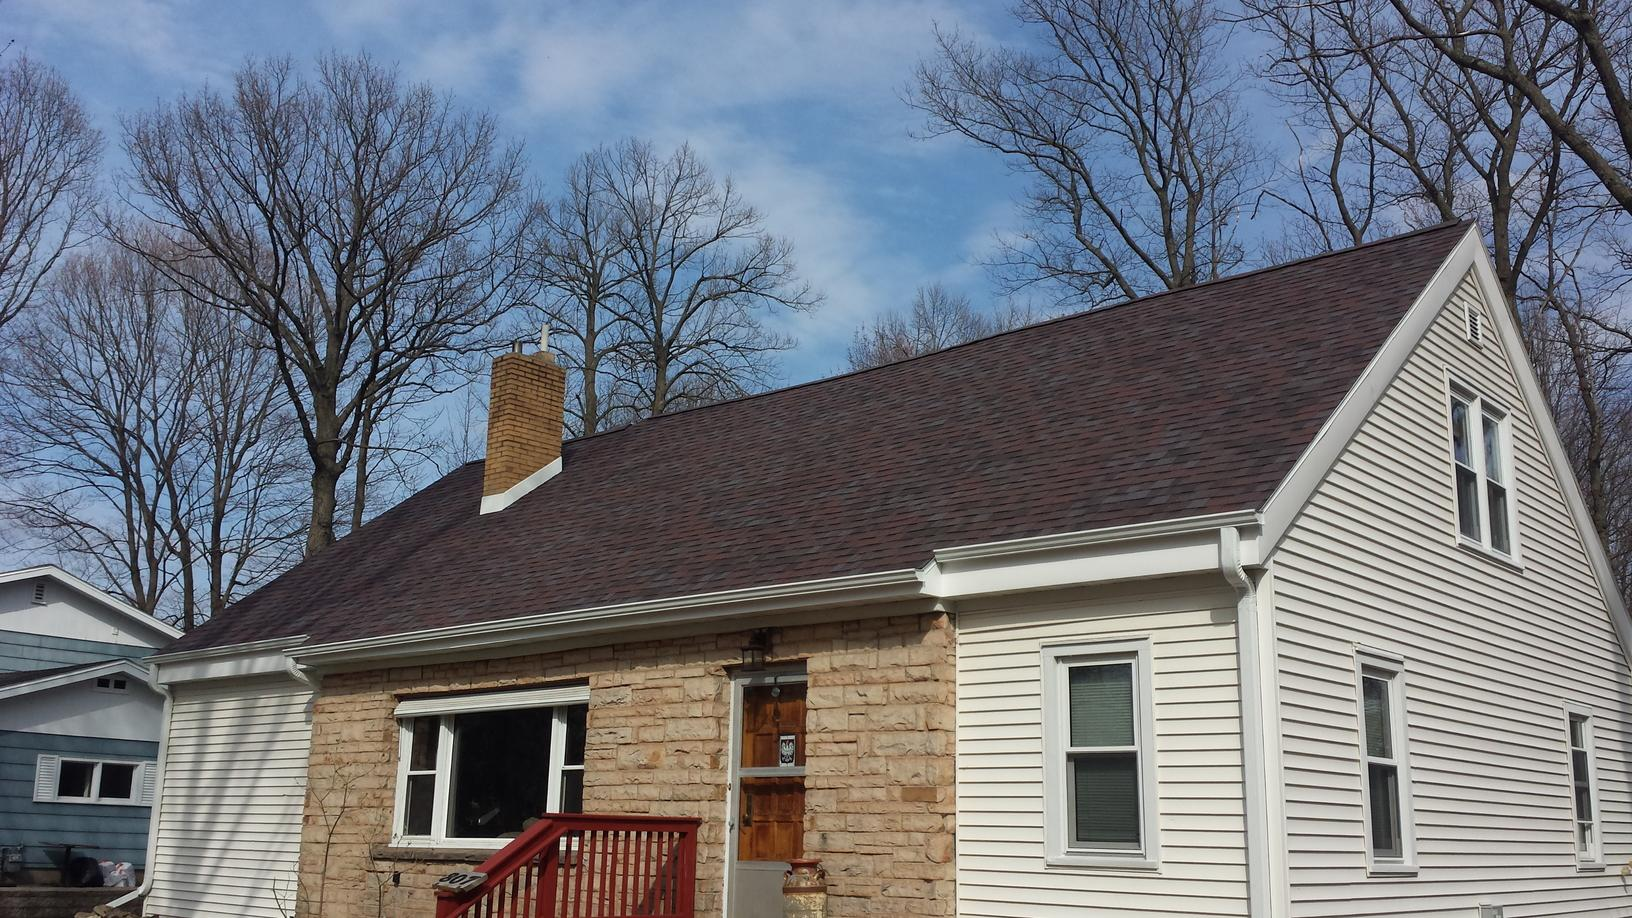 Wausau roof that was raised to provide proper ventilation - After Photo